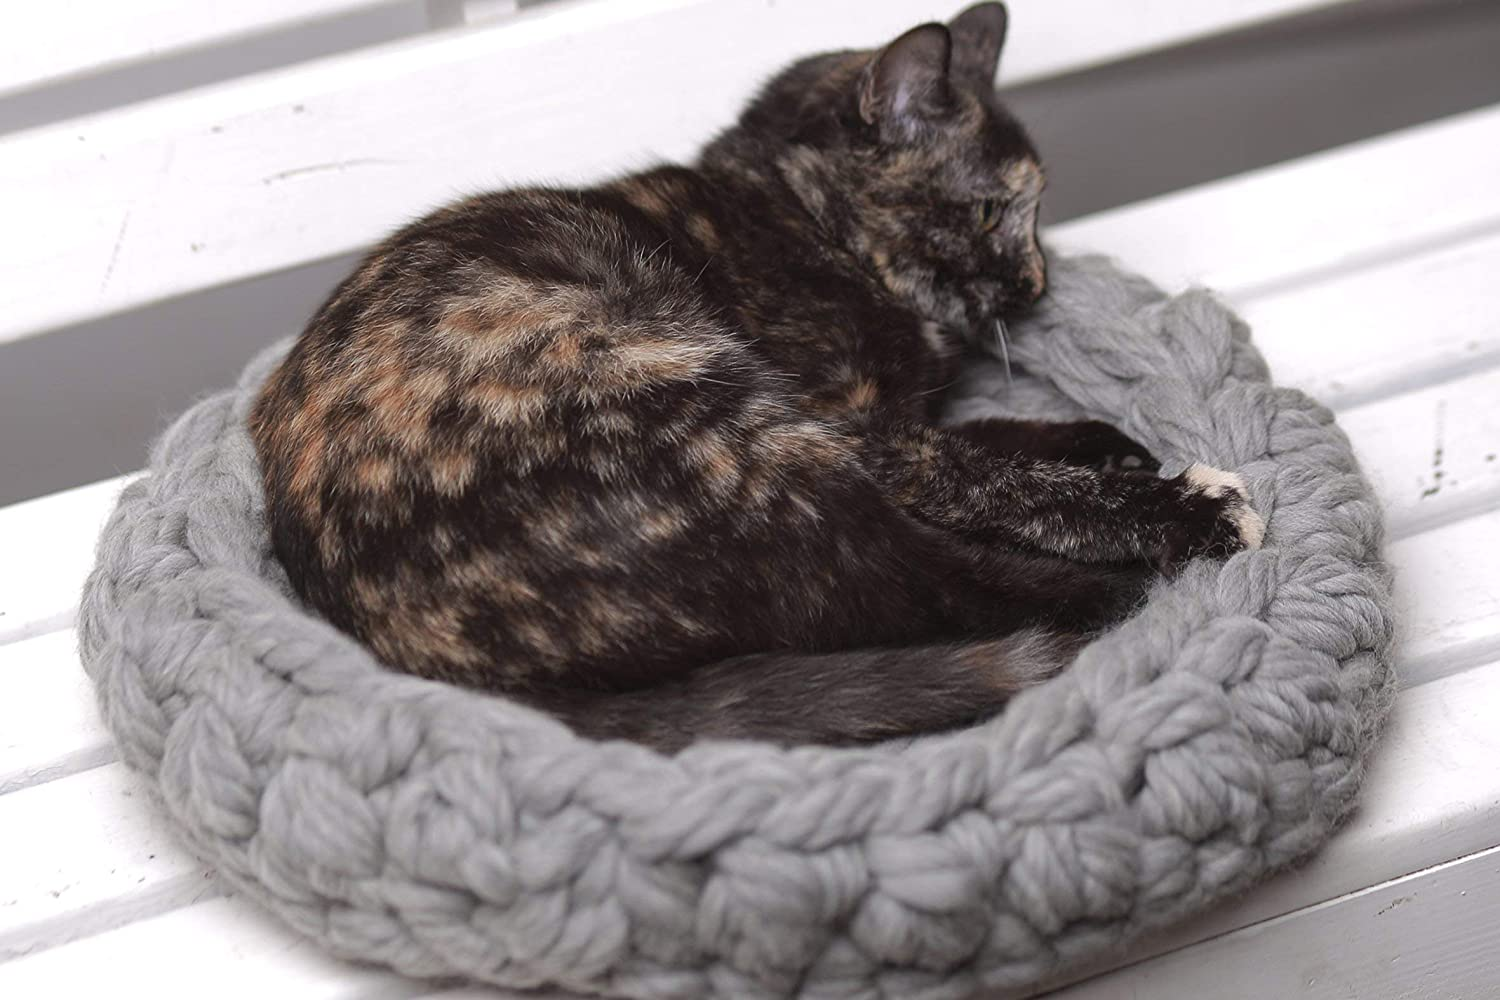 Cat bed, Chunky cat bed, Pet supplies, Pet bed, Cat bedding, Chunky pet bed, Cats, Chunky yarn, Cat furniture, Pets bed, Knit pet bed, Knitted pet bed, 4 colors